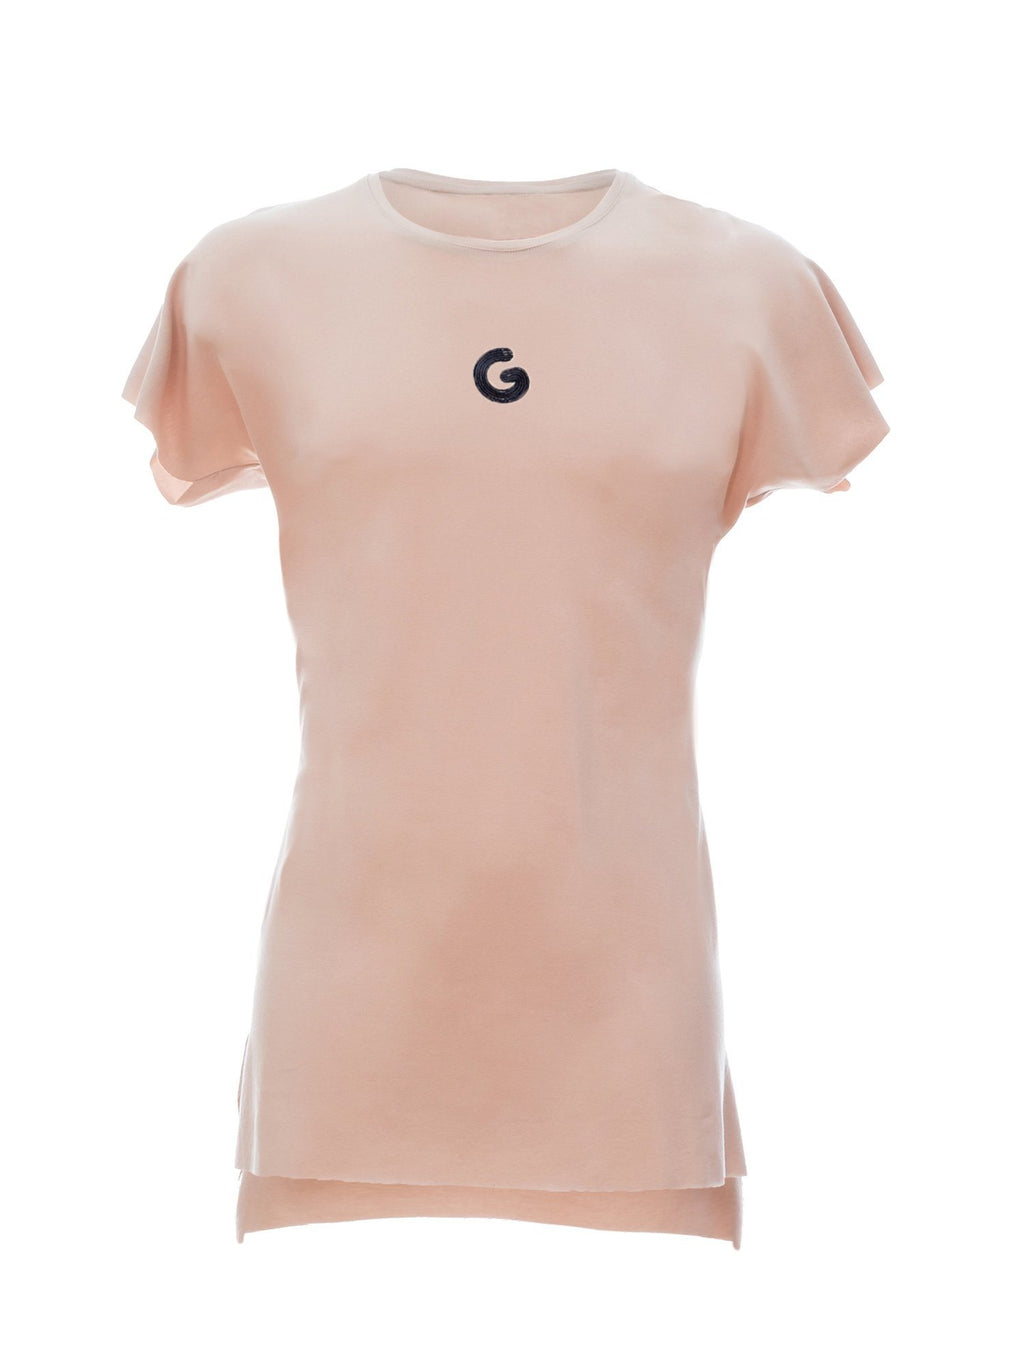 TheG Viscose Essential Short Sleeve Tee // tan